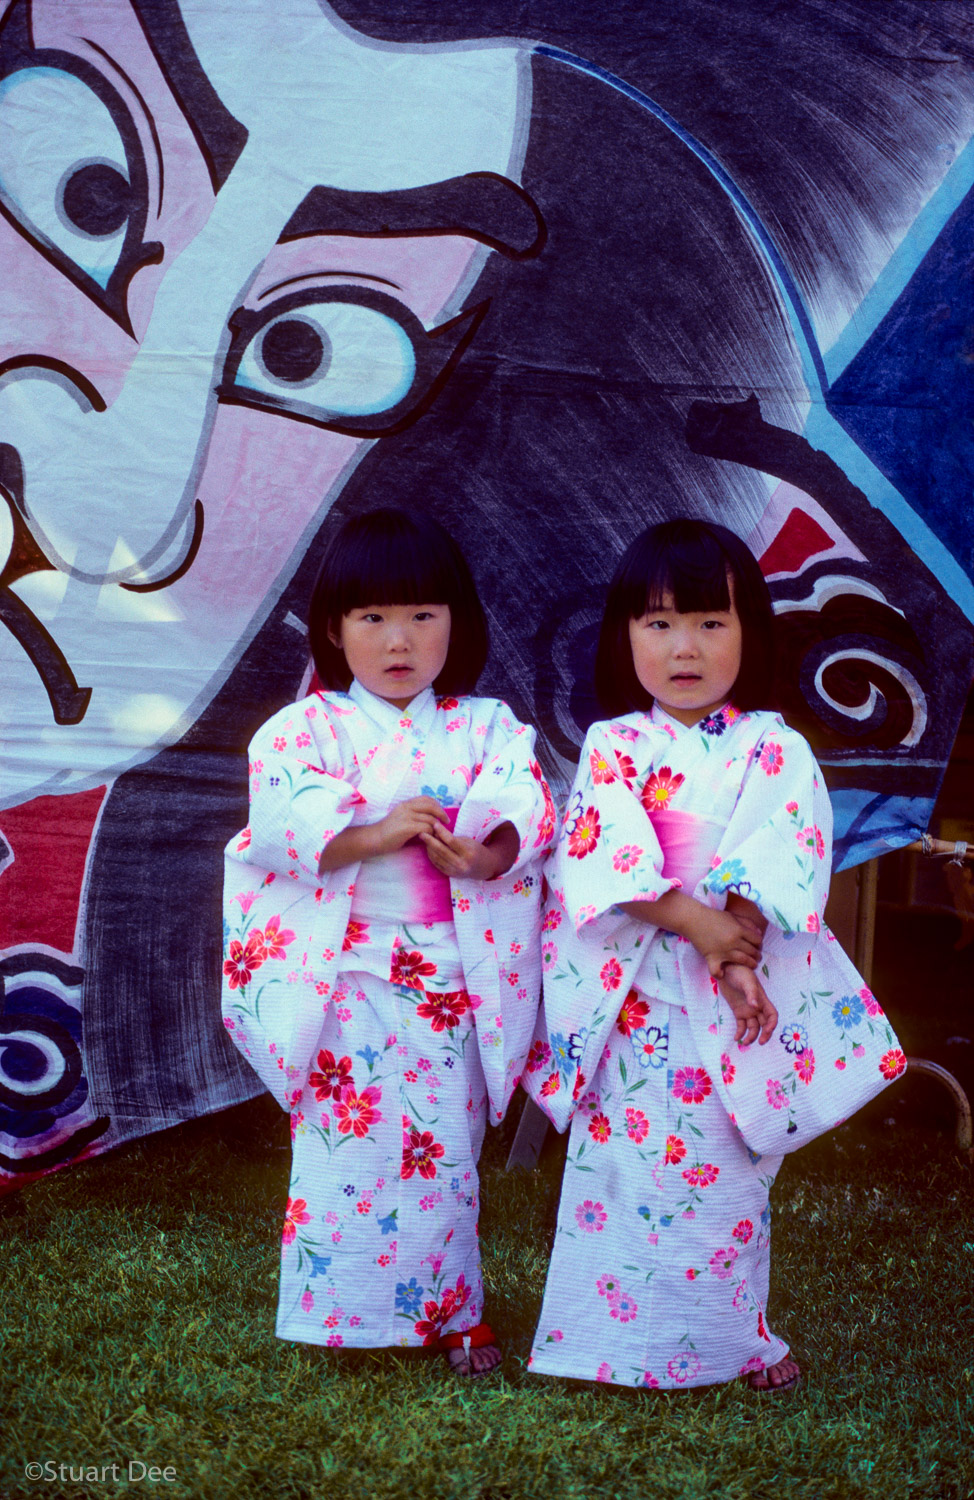 Twin Japanese girls at a Japanese festival, with a large picture of Japanese face staring at them from the background.